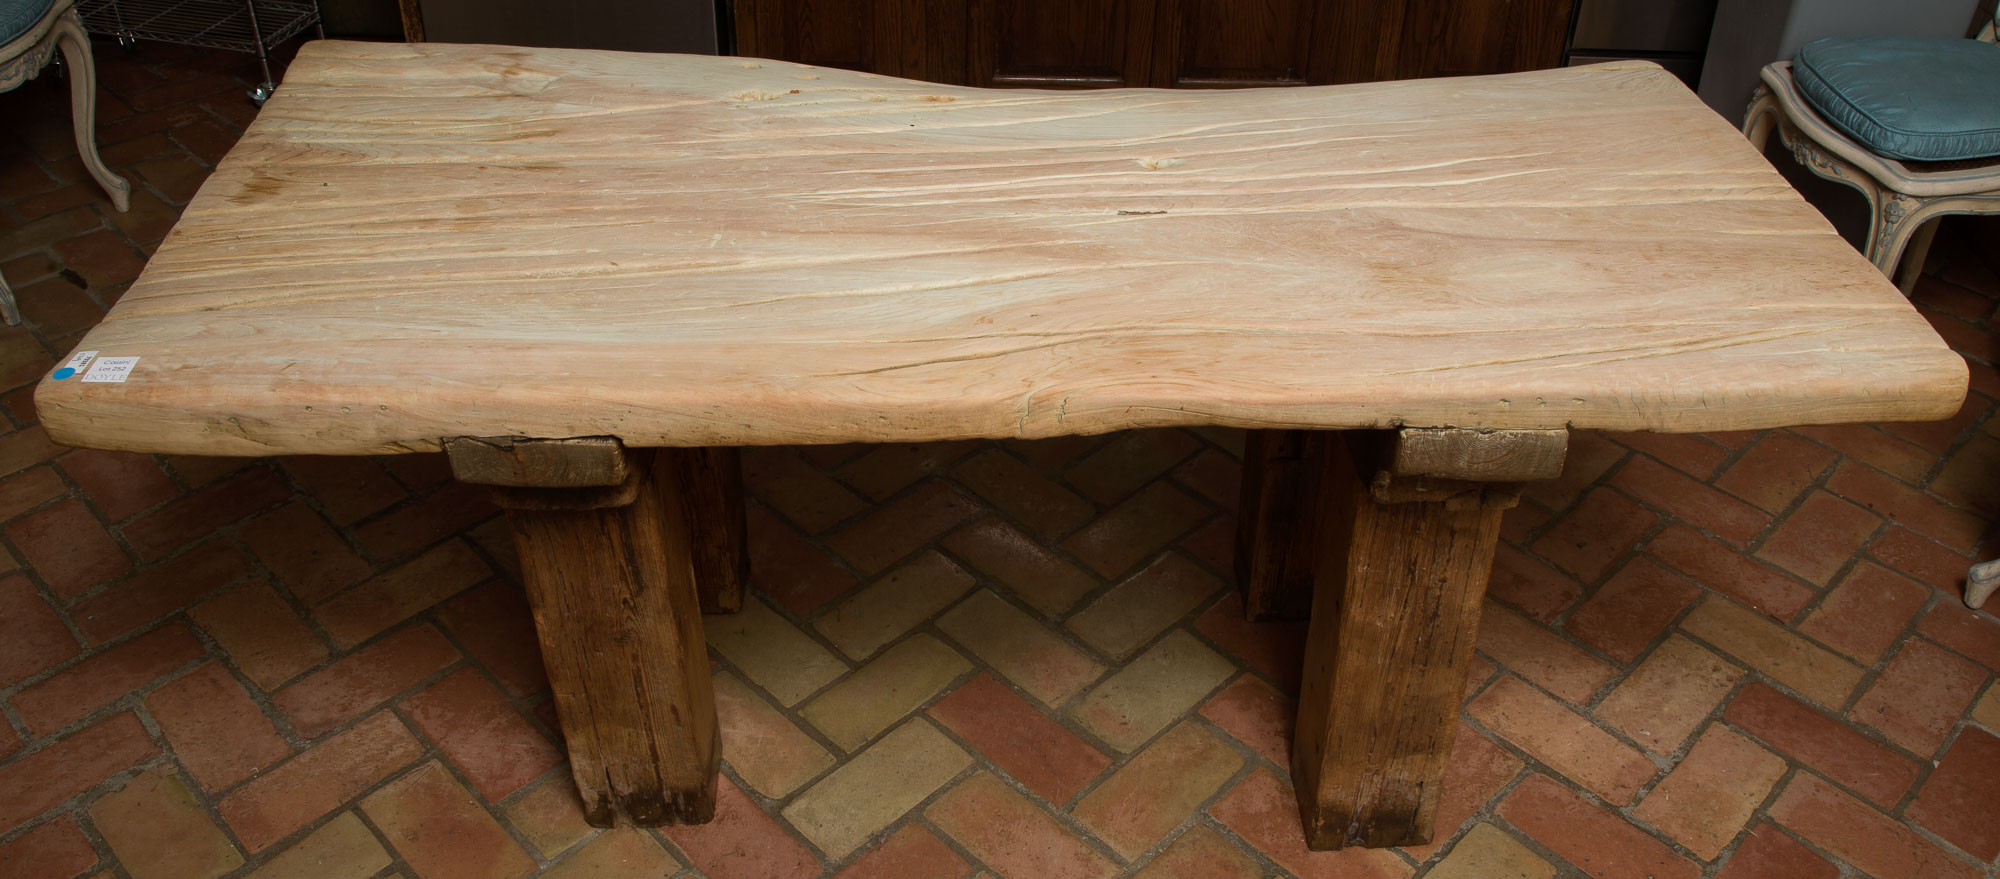 Lot image - Rustic Style Scrubbed Wood Slab Table